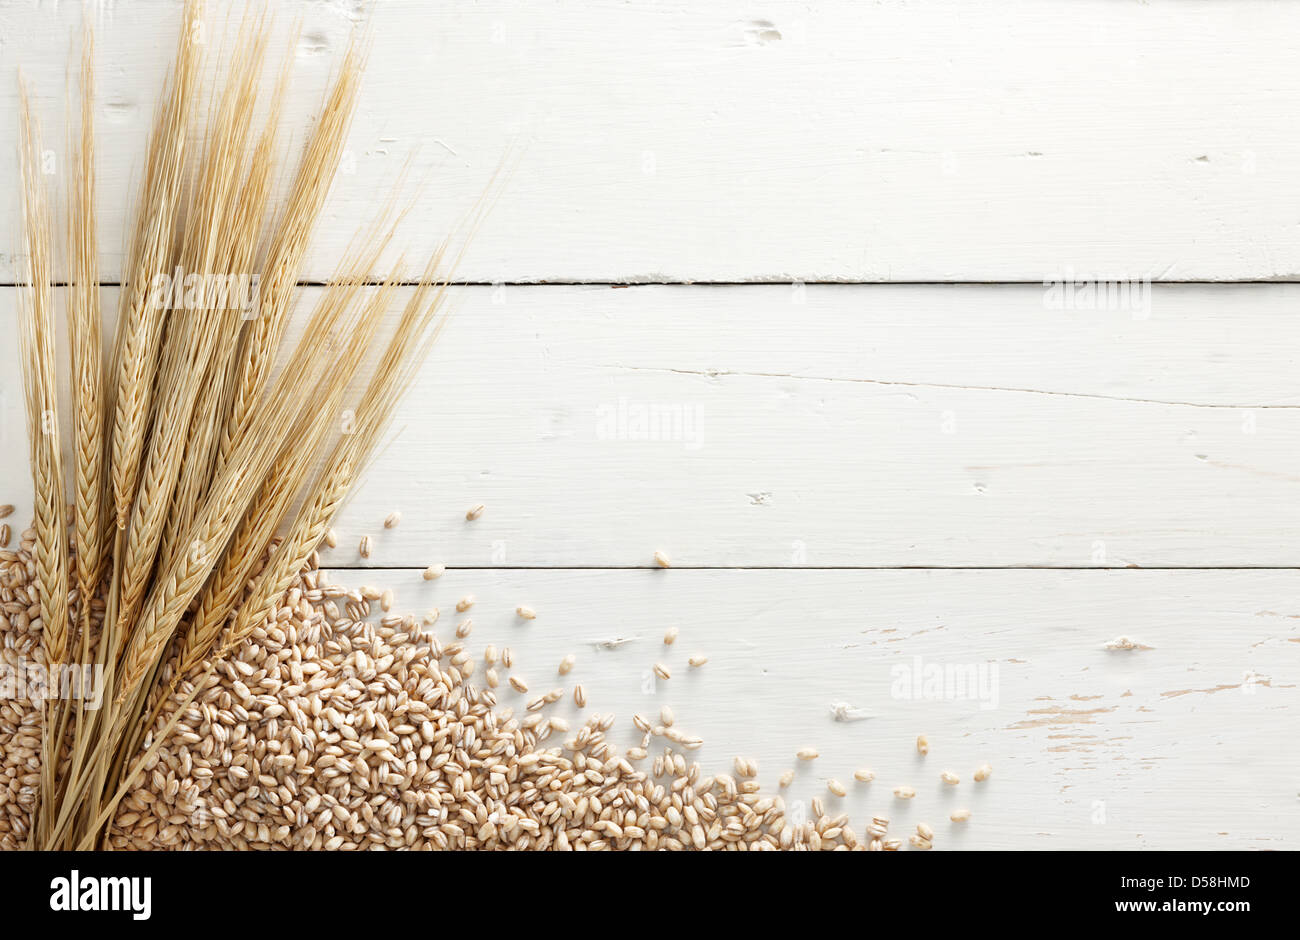 barley with pearl barley against white wood background - Stock Image